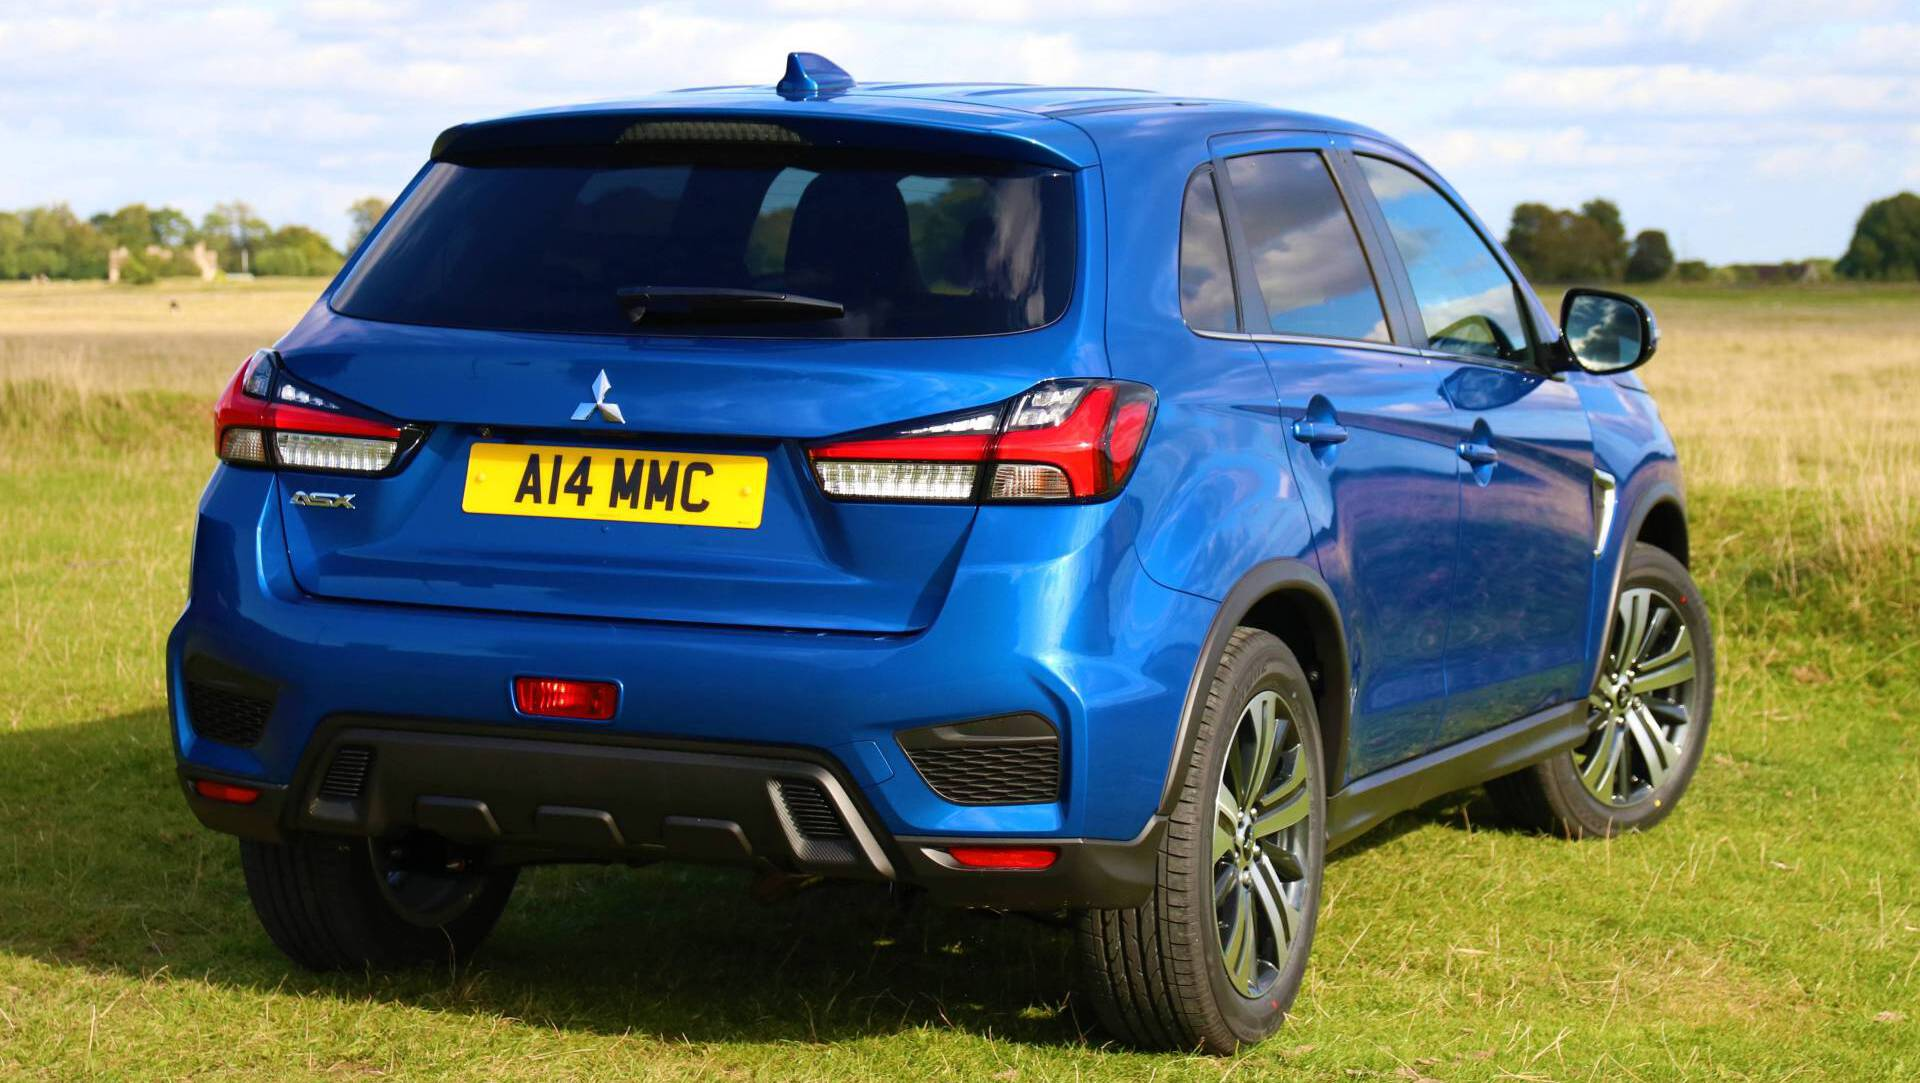 2020 mitsubishi asx goes on sale in britain from ÂŁ20295